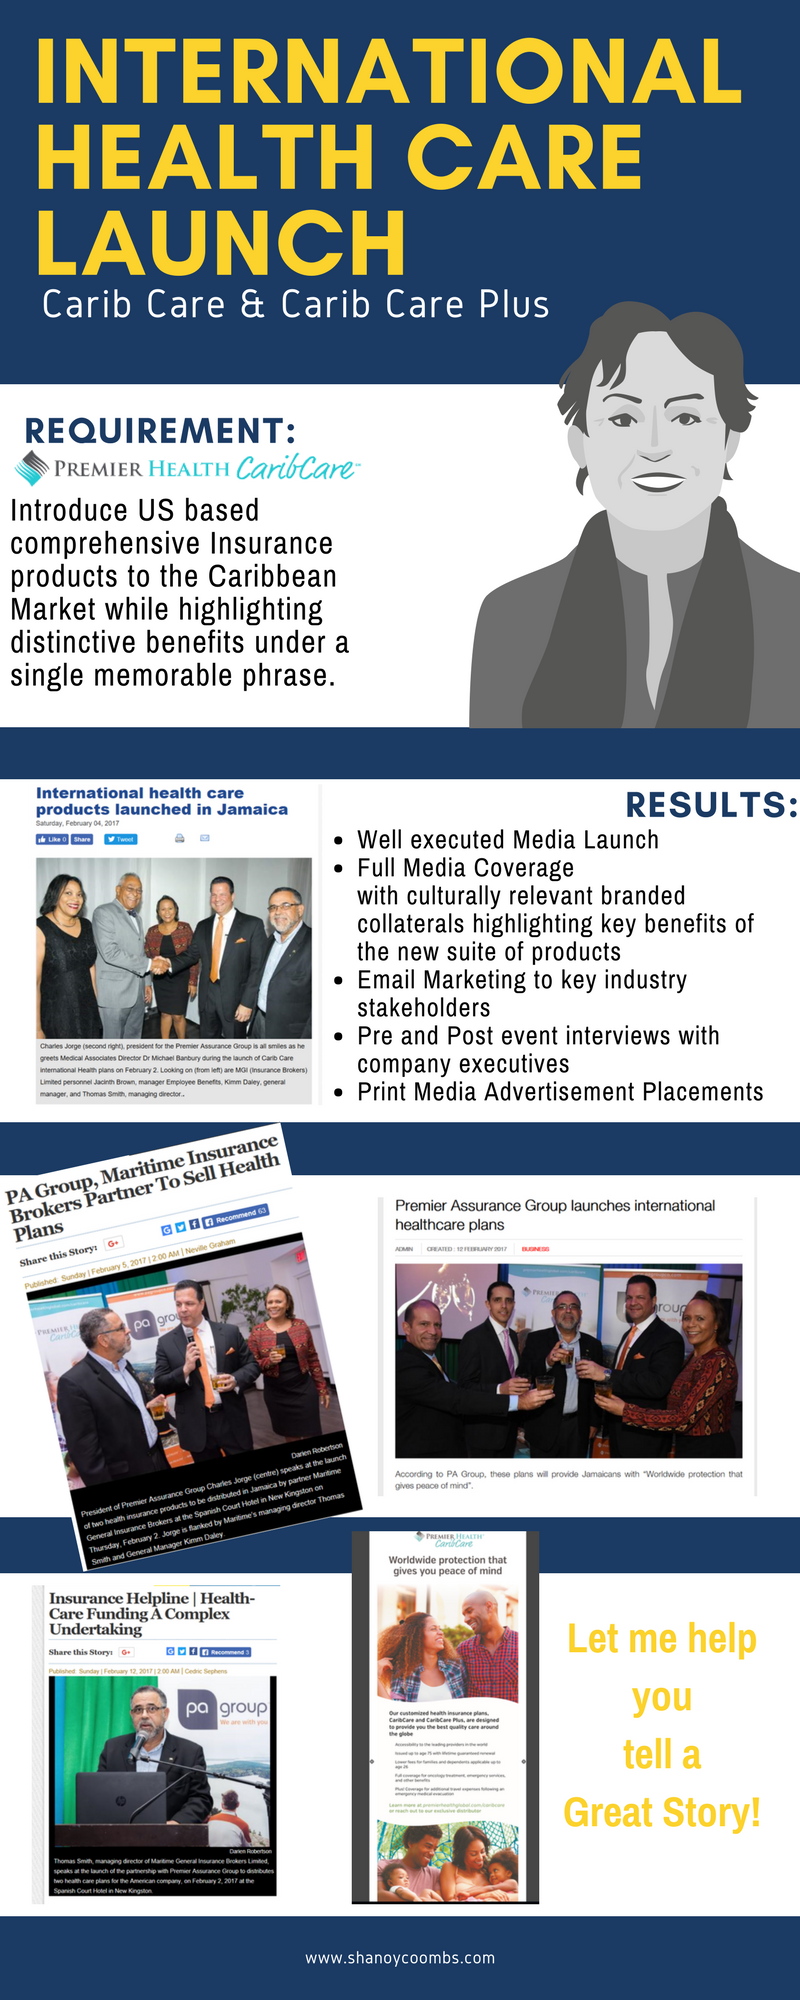 Carib care client overview.png